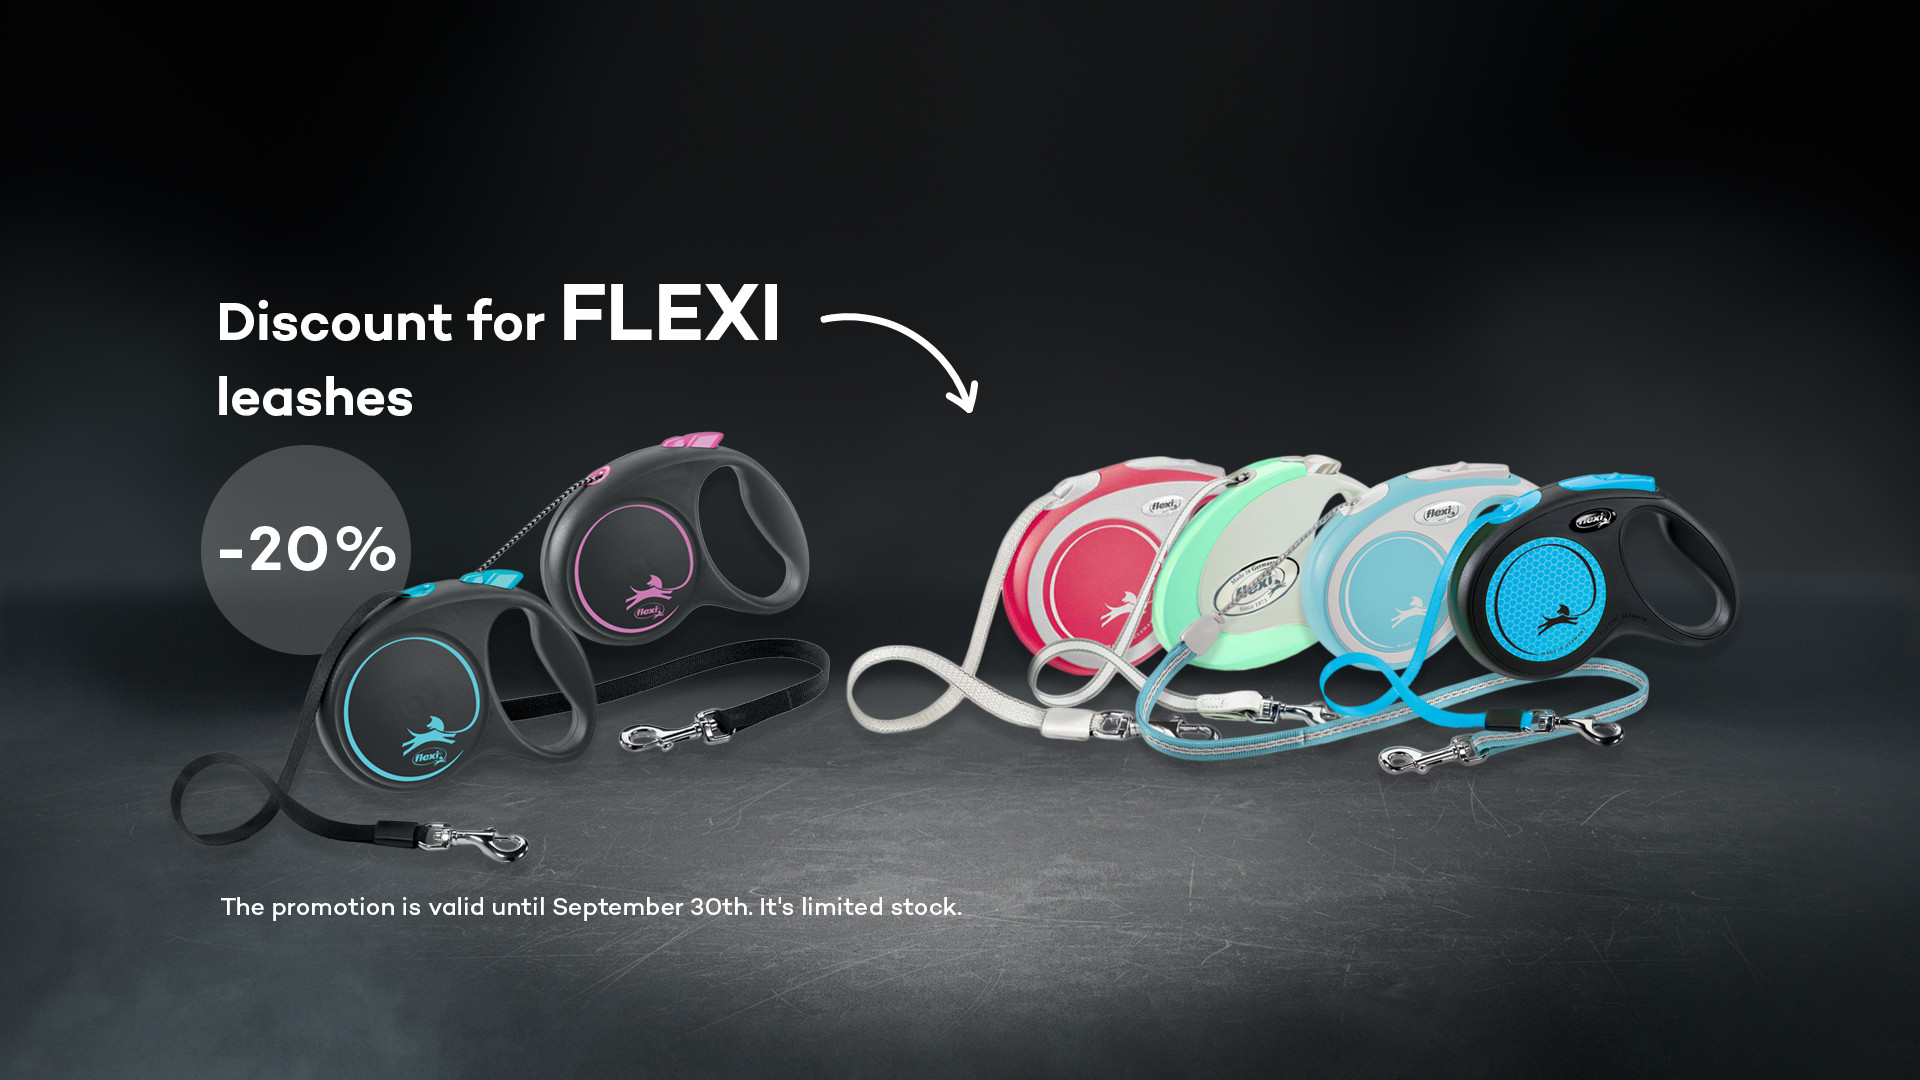 20% discount for FLEXI leashes